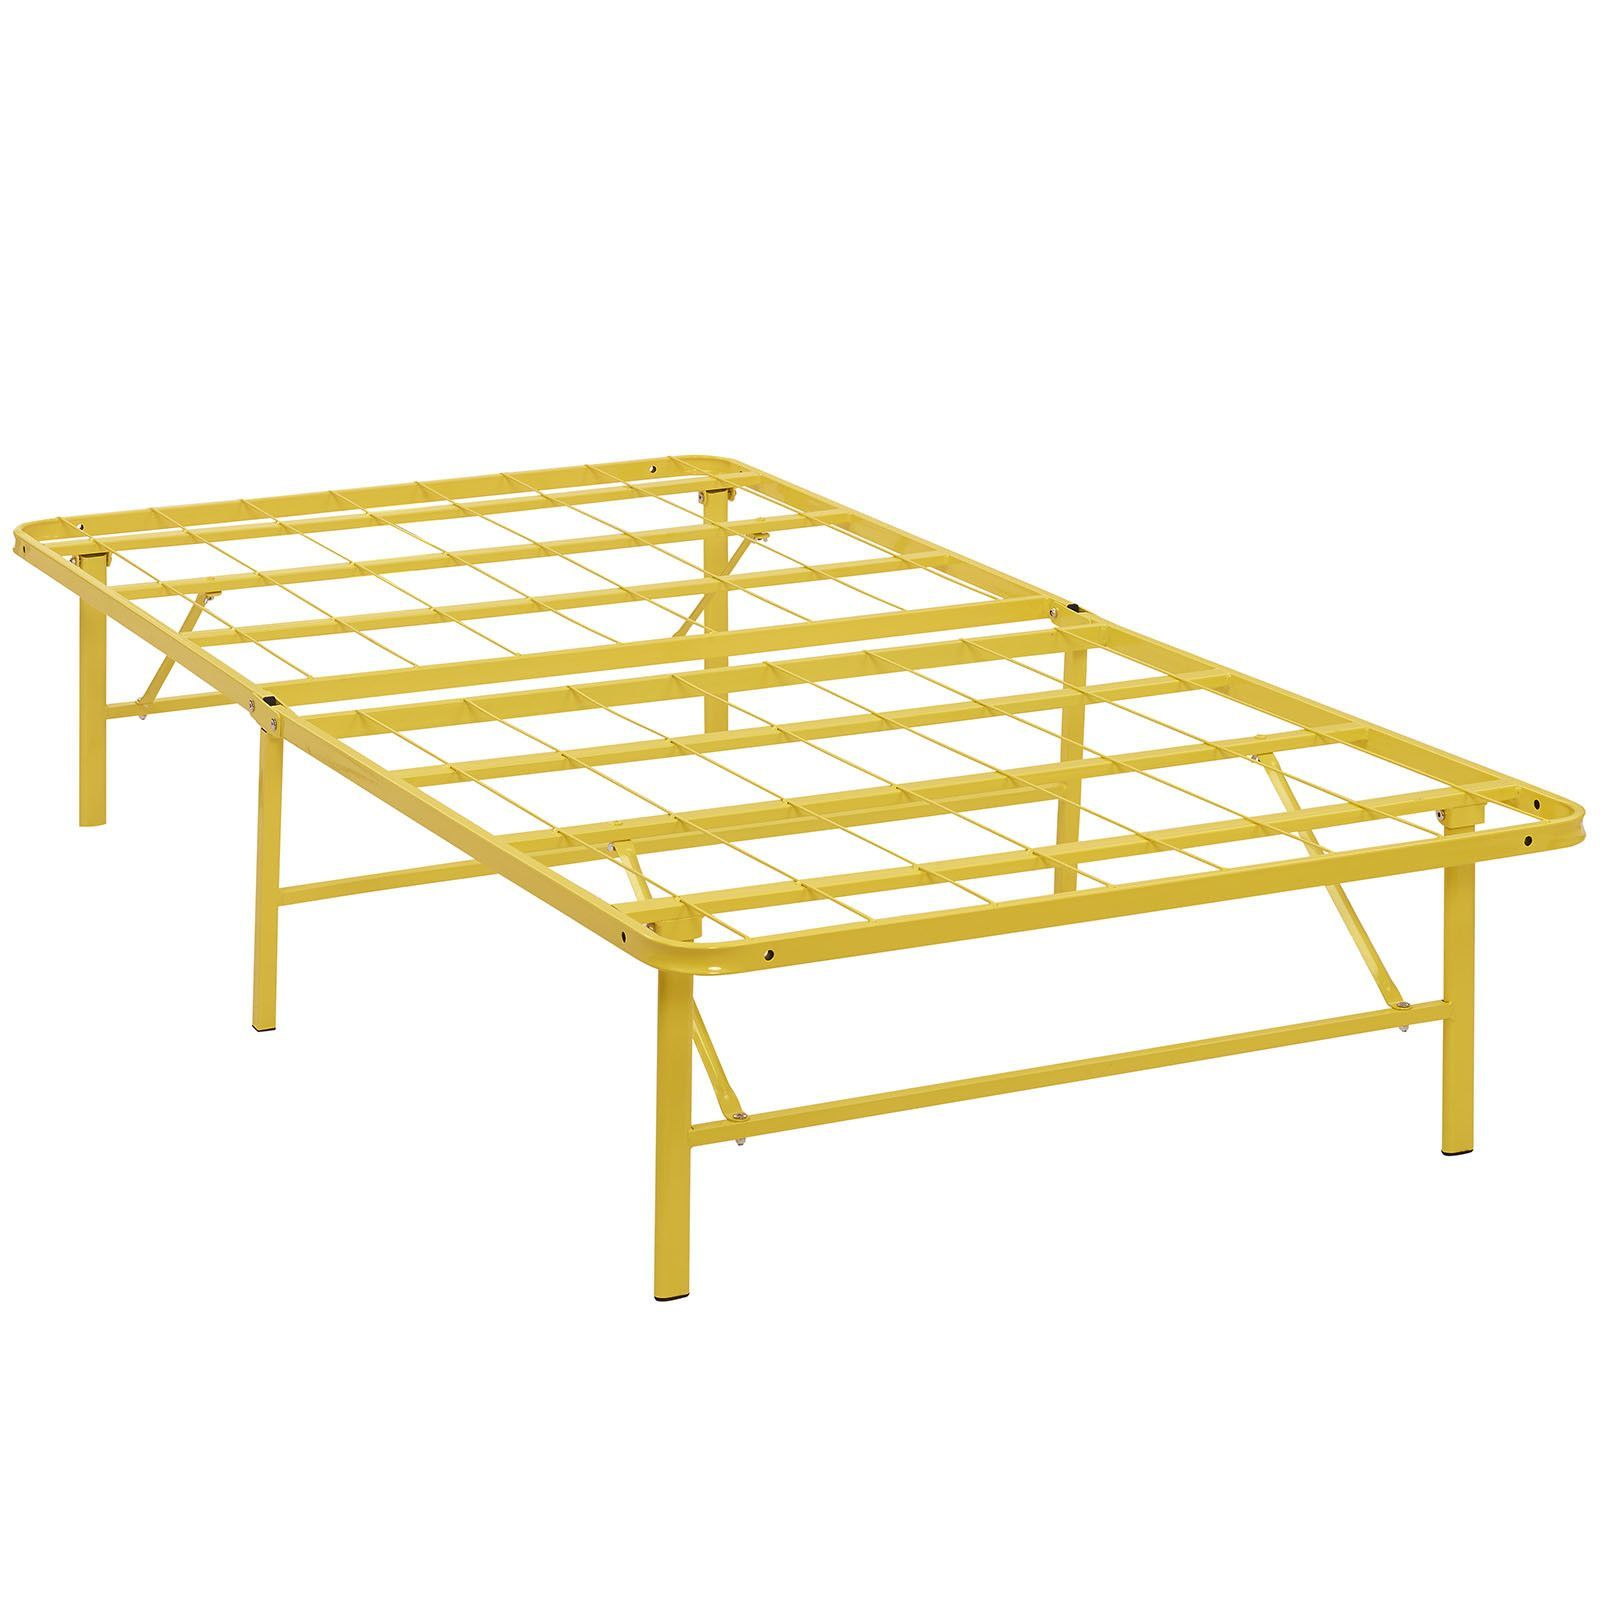 Horizon Twin Stainless Steel Bed Frame - Yellow